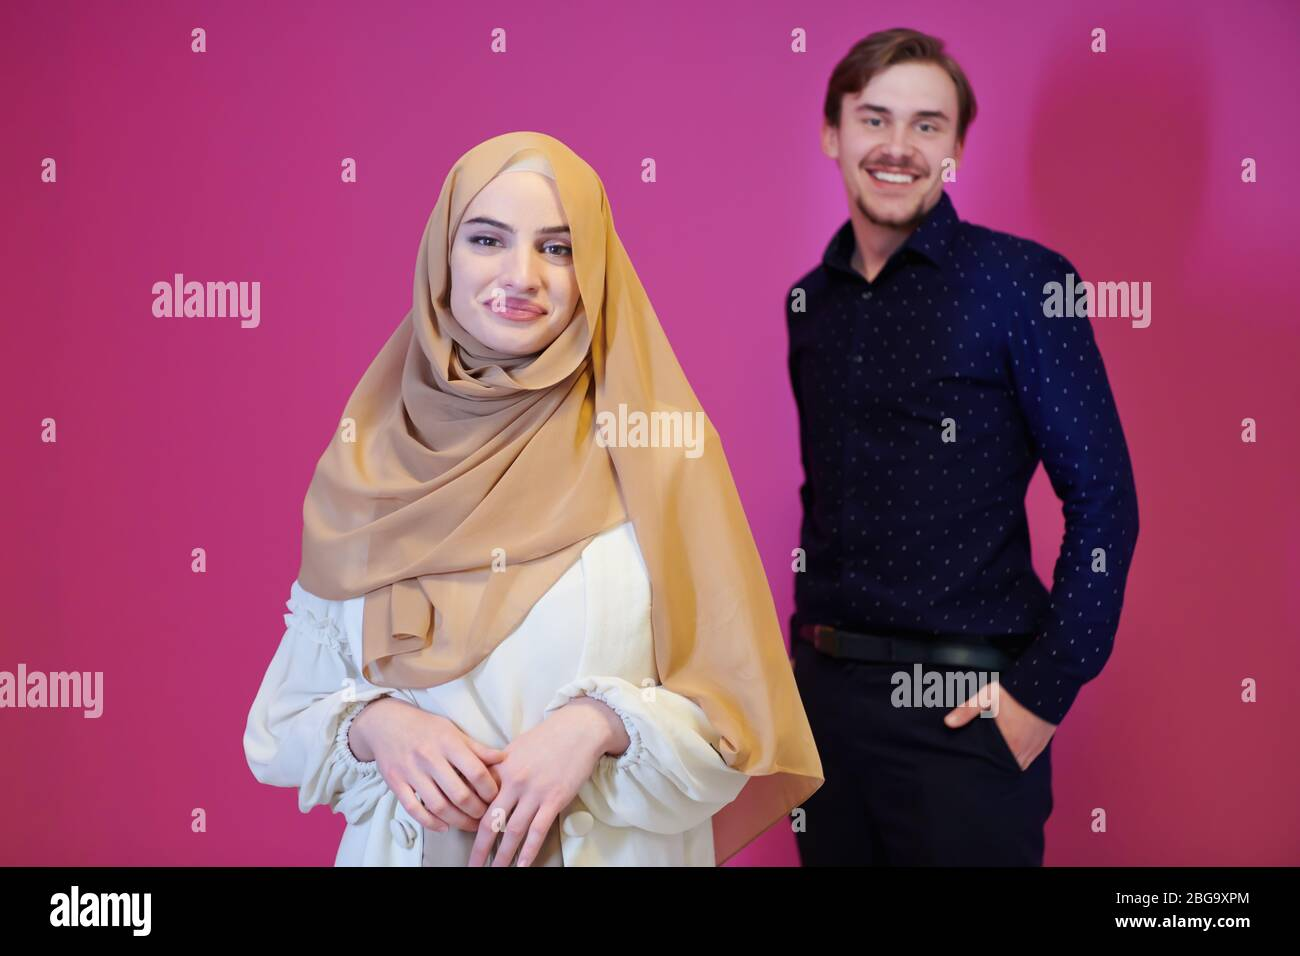 Young girls always look for style and fashion in whatever they wear. Portrait Of Young Muslim Couple Woman In Fashionable Dress With Hijab Isolated On Pink Background Representing Modern Islam Fashion And Ramadan Kareem Stock Photo Alamy